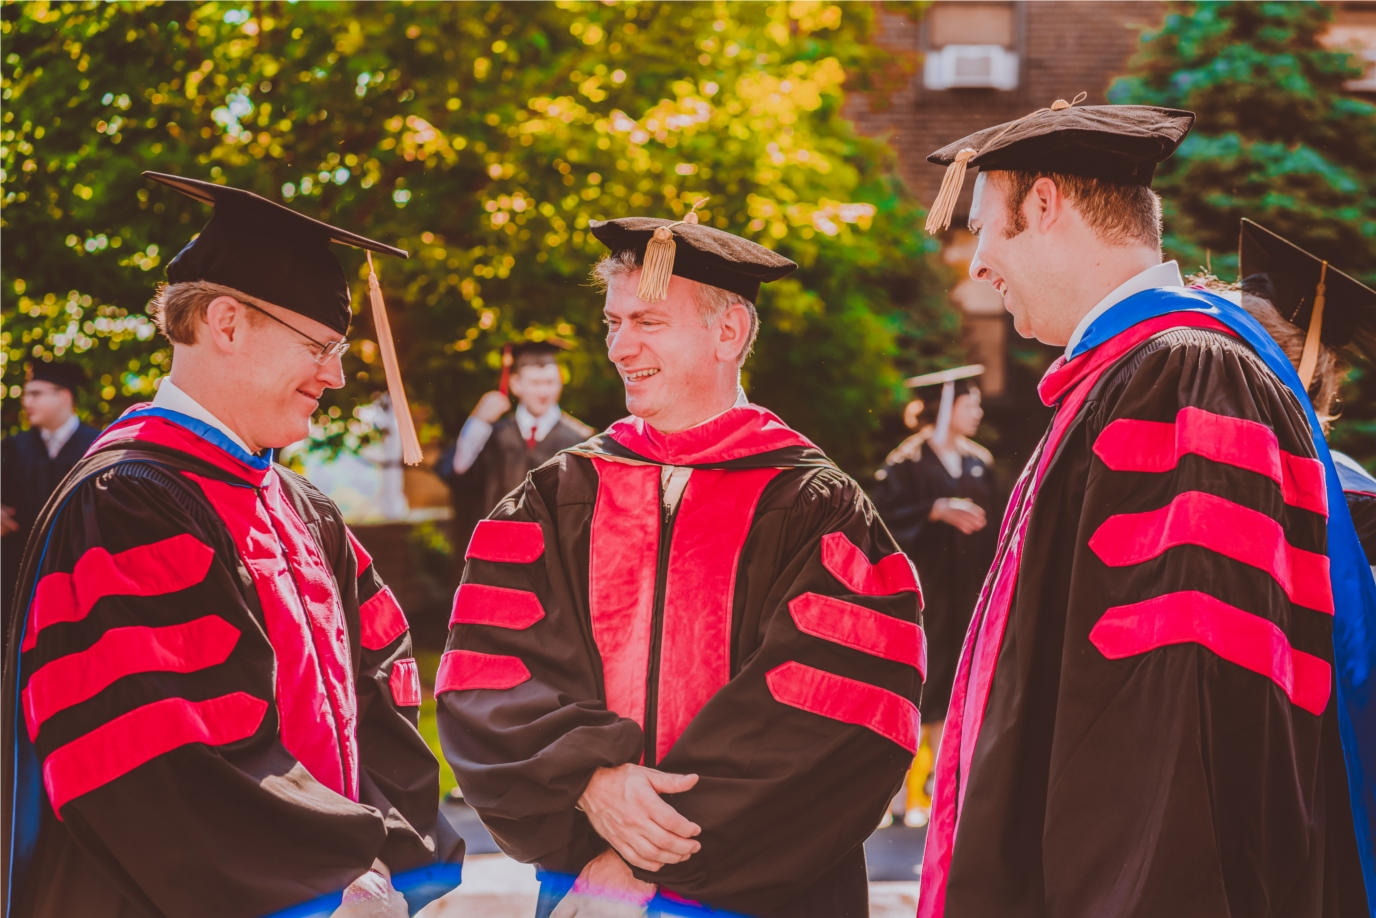 Three Ministerial Education Division faculty members talk prior to commencement